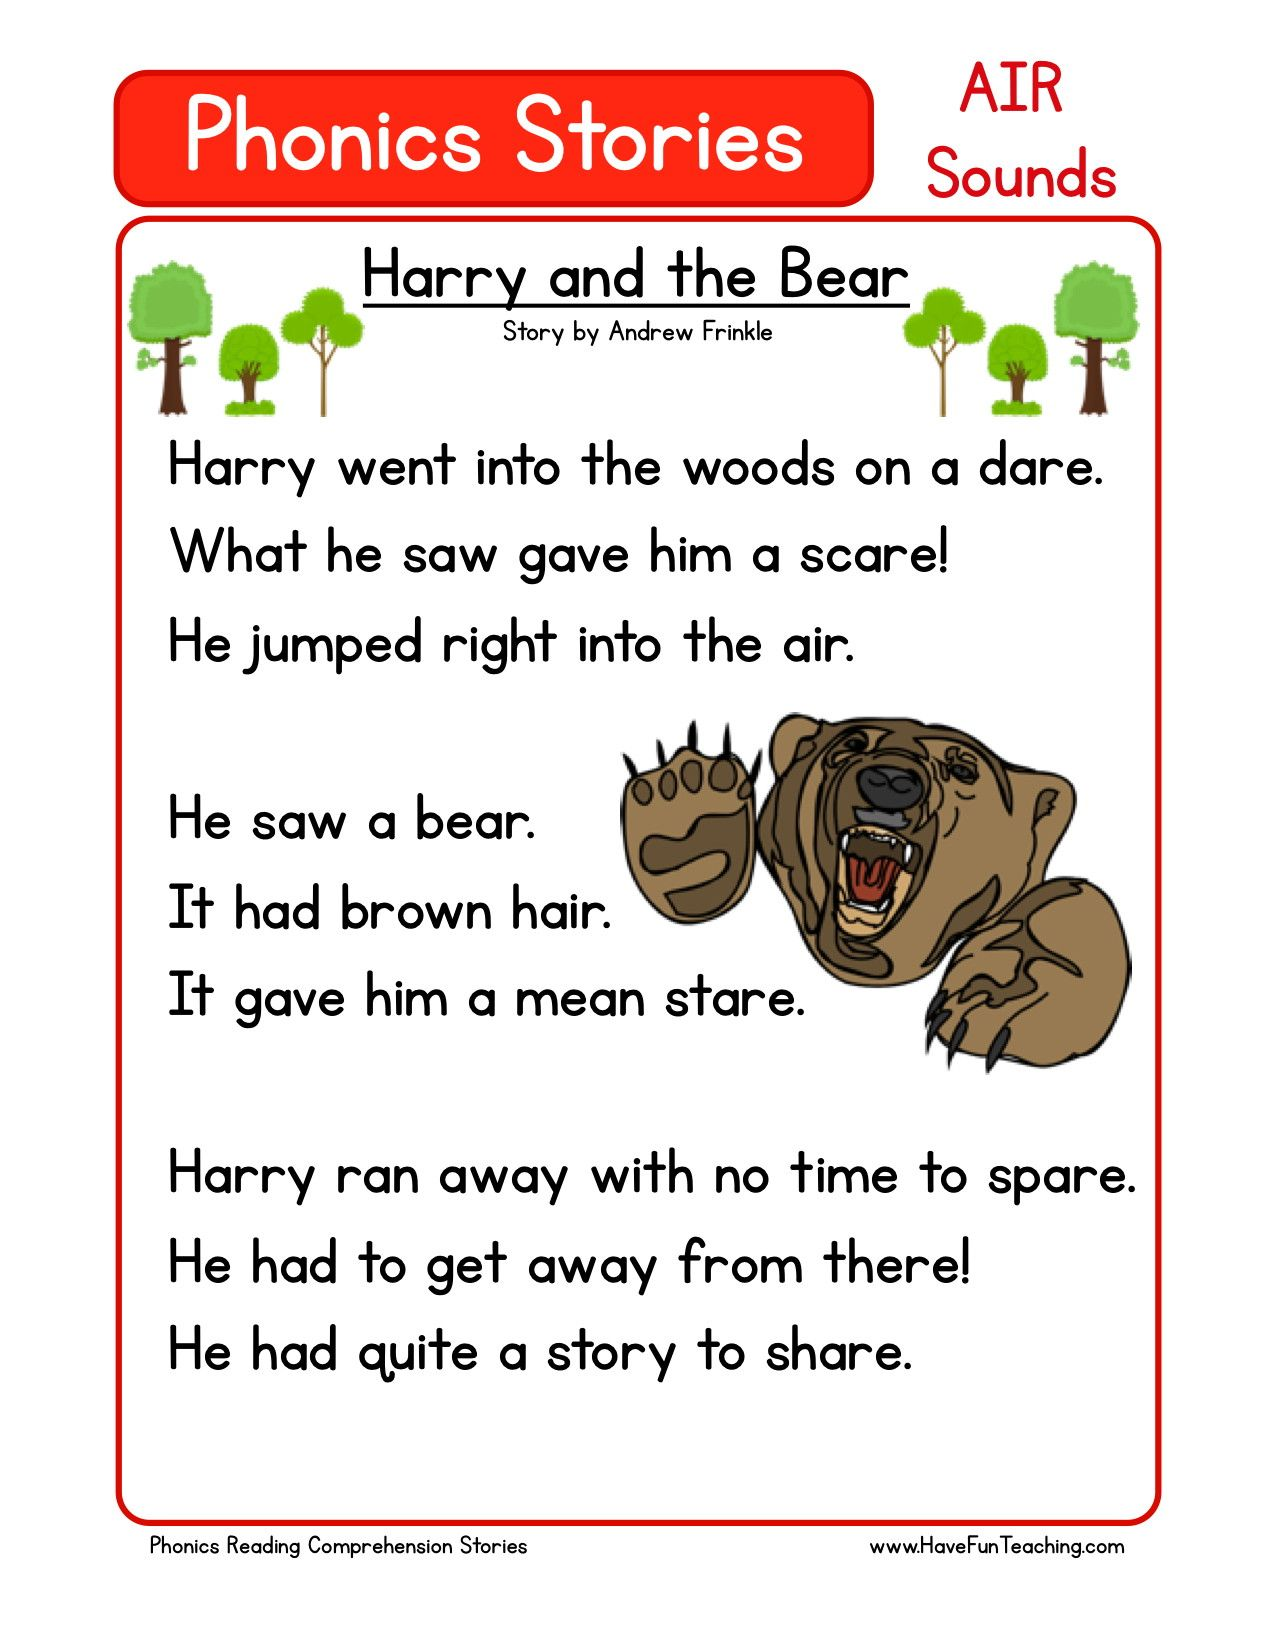 Reading Comprehension Worksheet - Harry and the Bear | Phonic Story ...